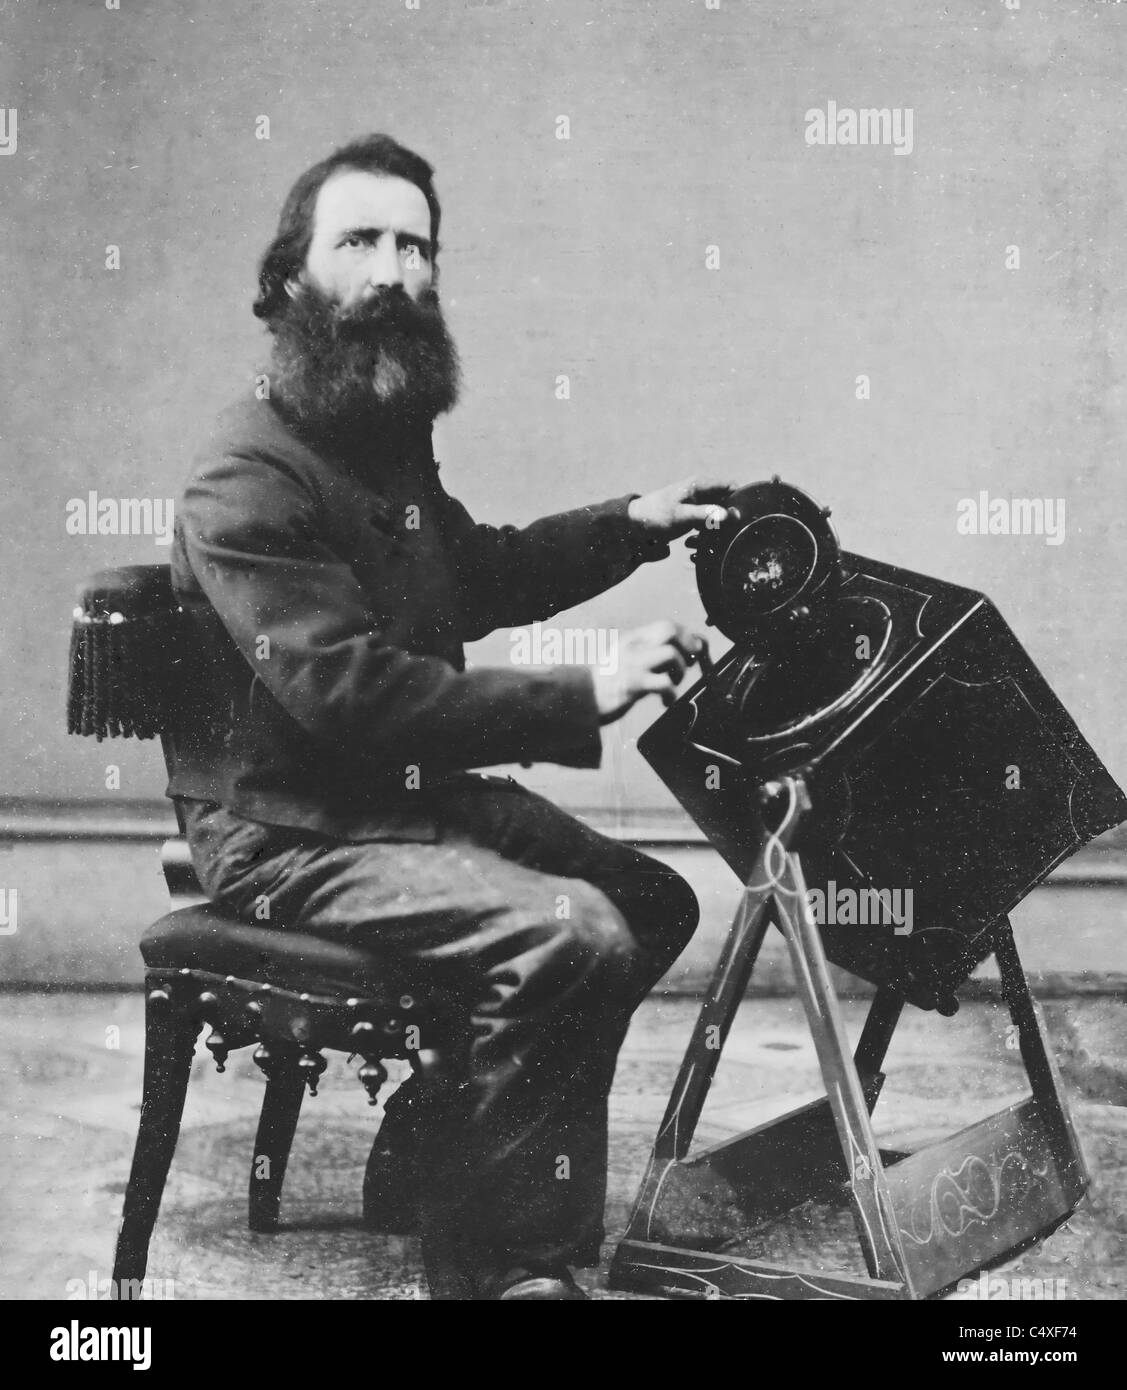 Civil War induction officer with lottery box for draft - USA Civil War, circa 1863 - Stock Image